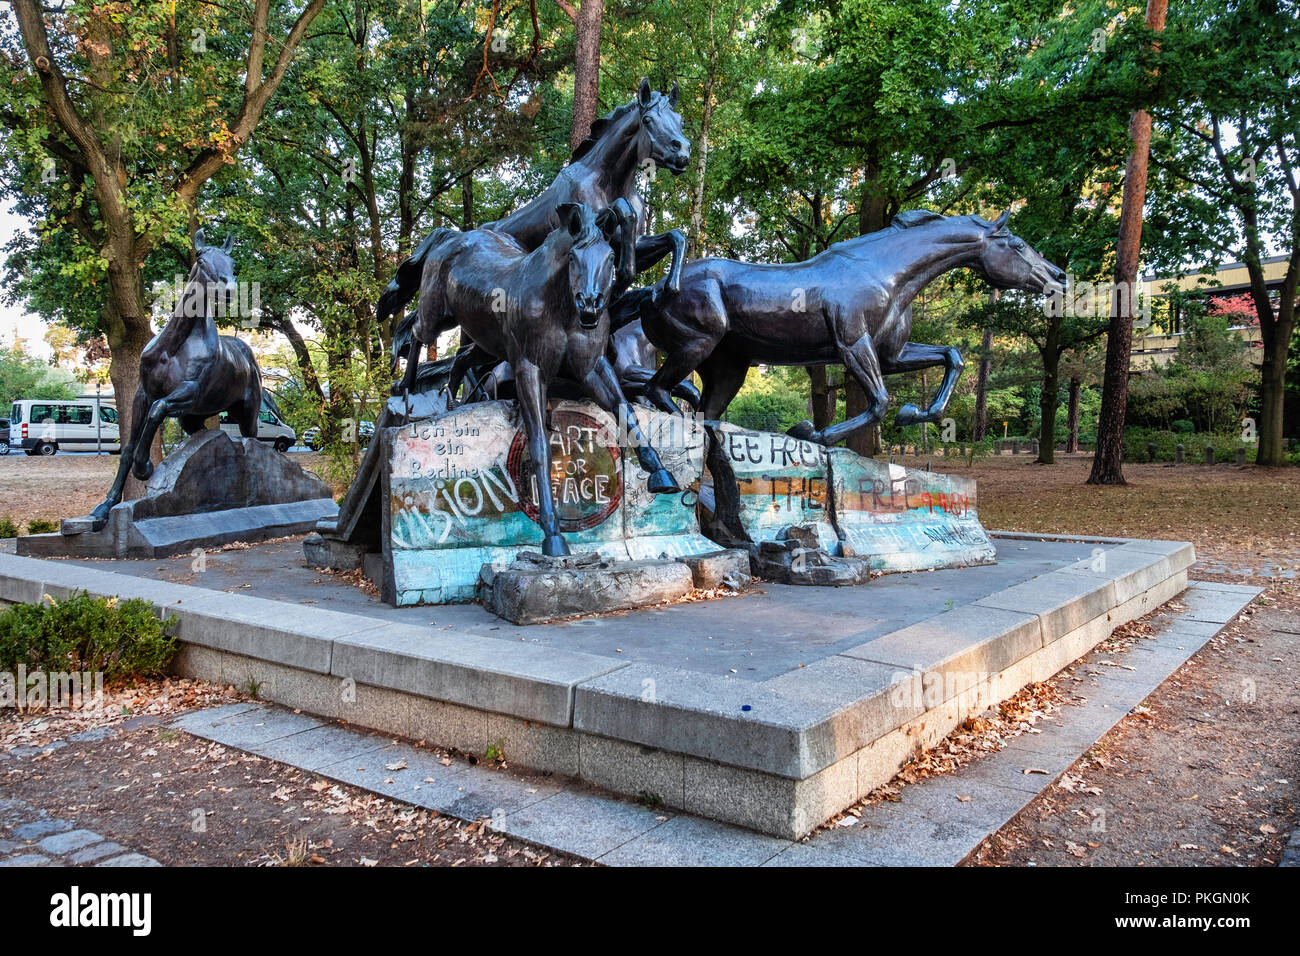 Berlin Dahlem Bronze Sculpture Of Five Wild Horses Jumping Over Remains Of Berlin Wall Gift From Usa To Fdr Commemorates The Day The Wall Fell Stock Photo Alamy